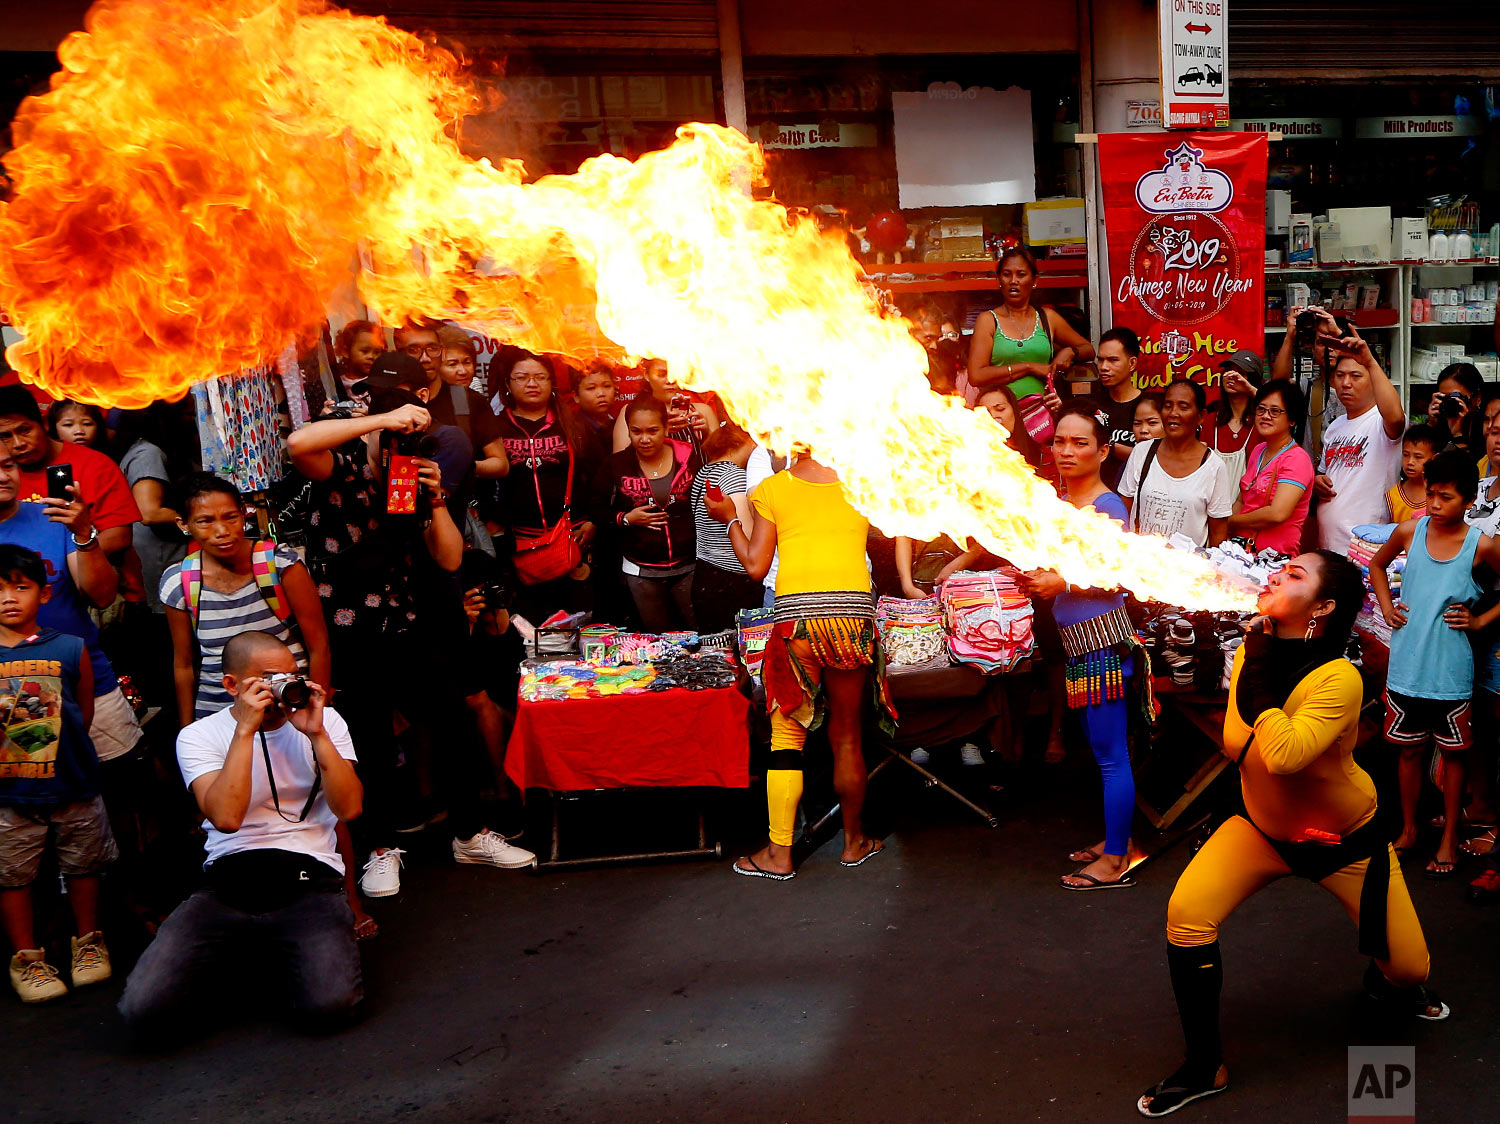 Fire-eater performs during celebrations of the Lunar New Year in the Chinatown district of Manila, Philippines, Tuesday, Feb. 5, 2019.  (AP Photo/Bullit Marquez)